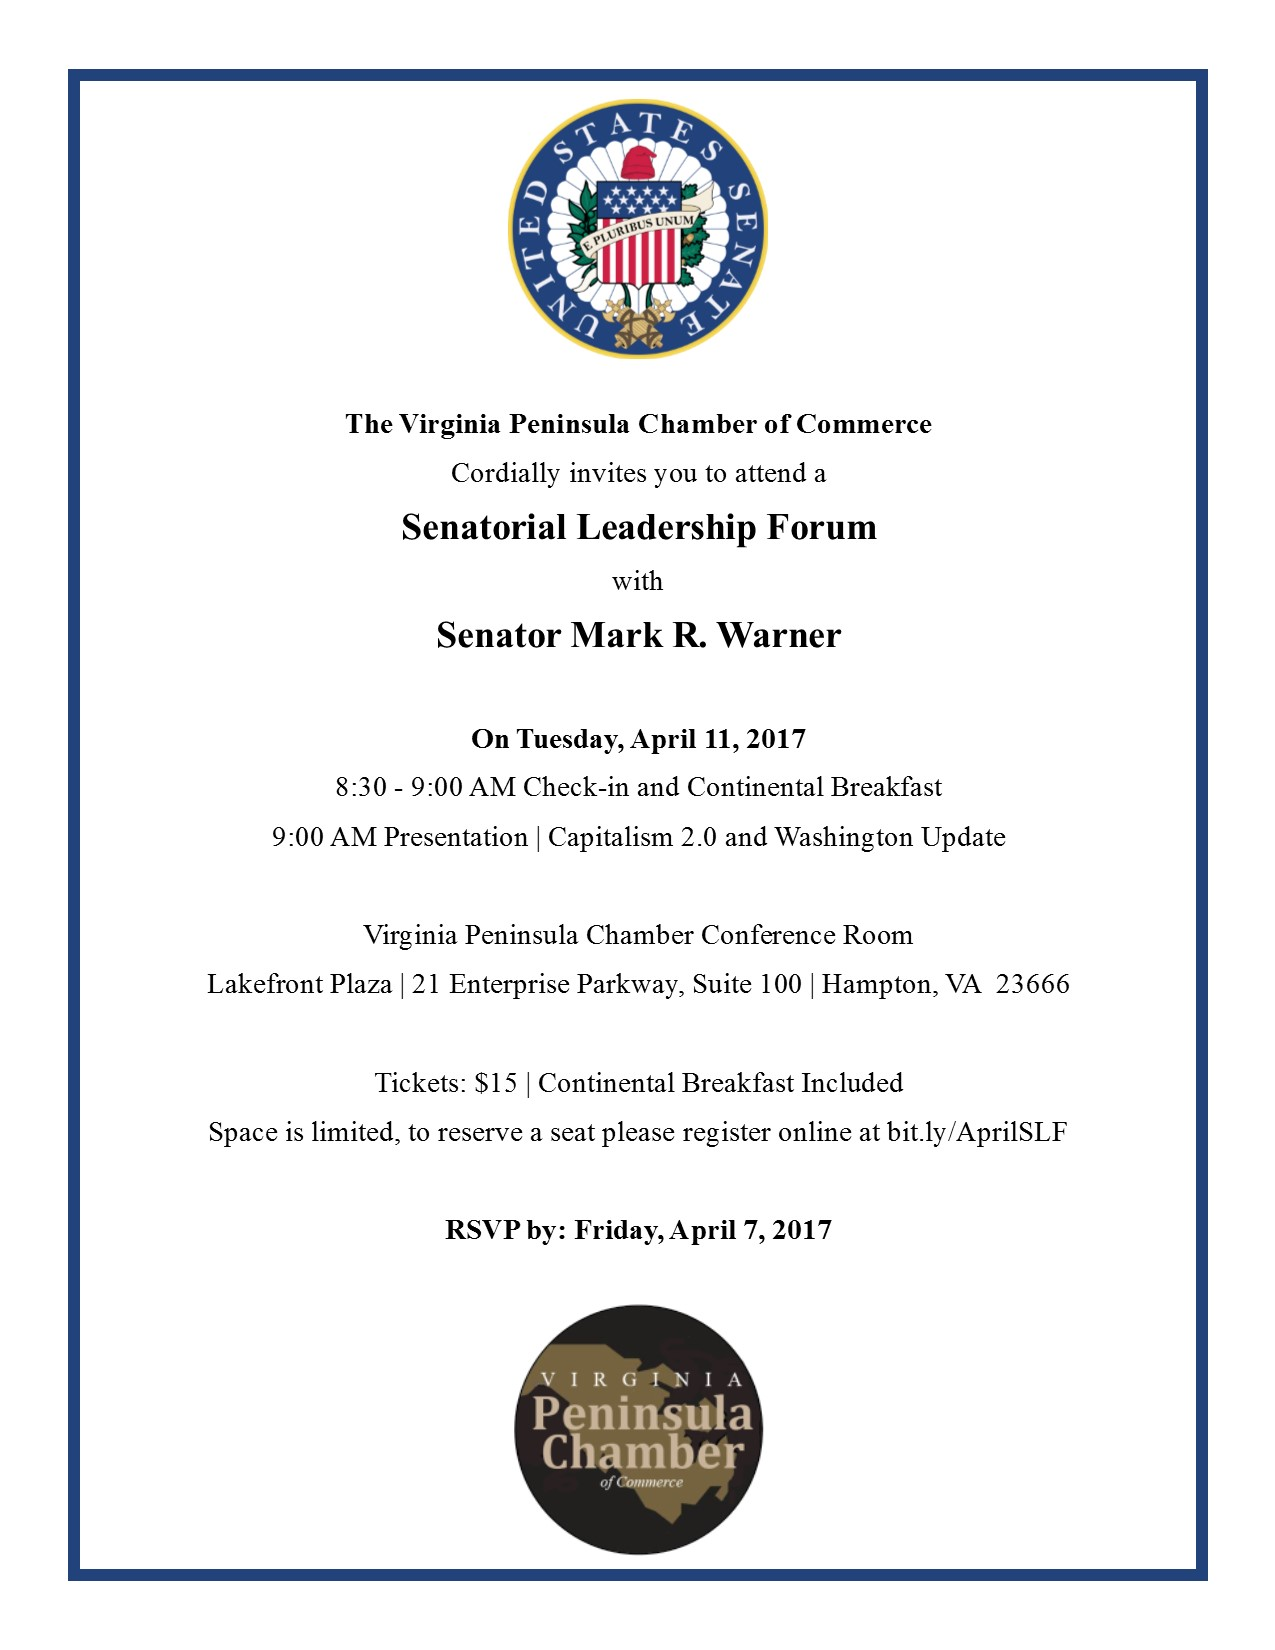 2017-0411-Senatorial-Leadership-Forum-with-Senator-Mark-Warner.jpg